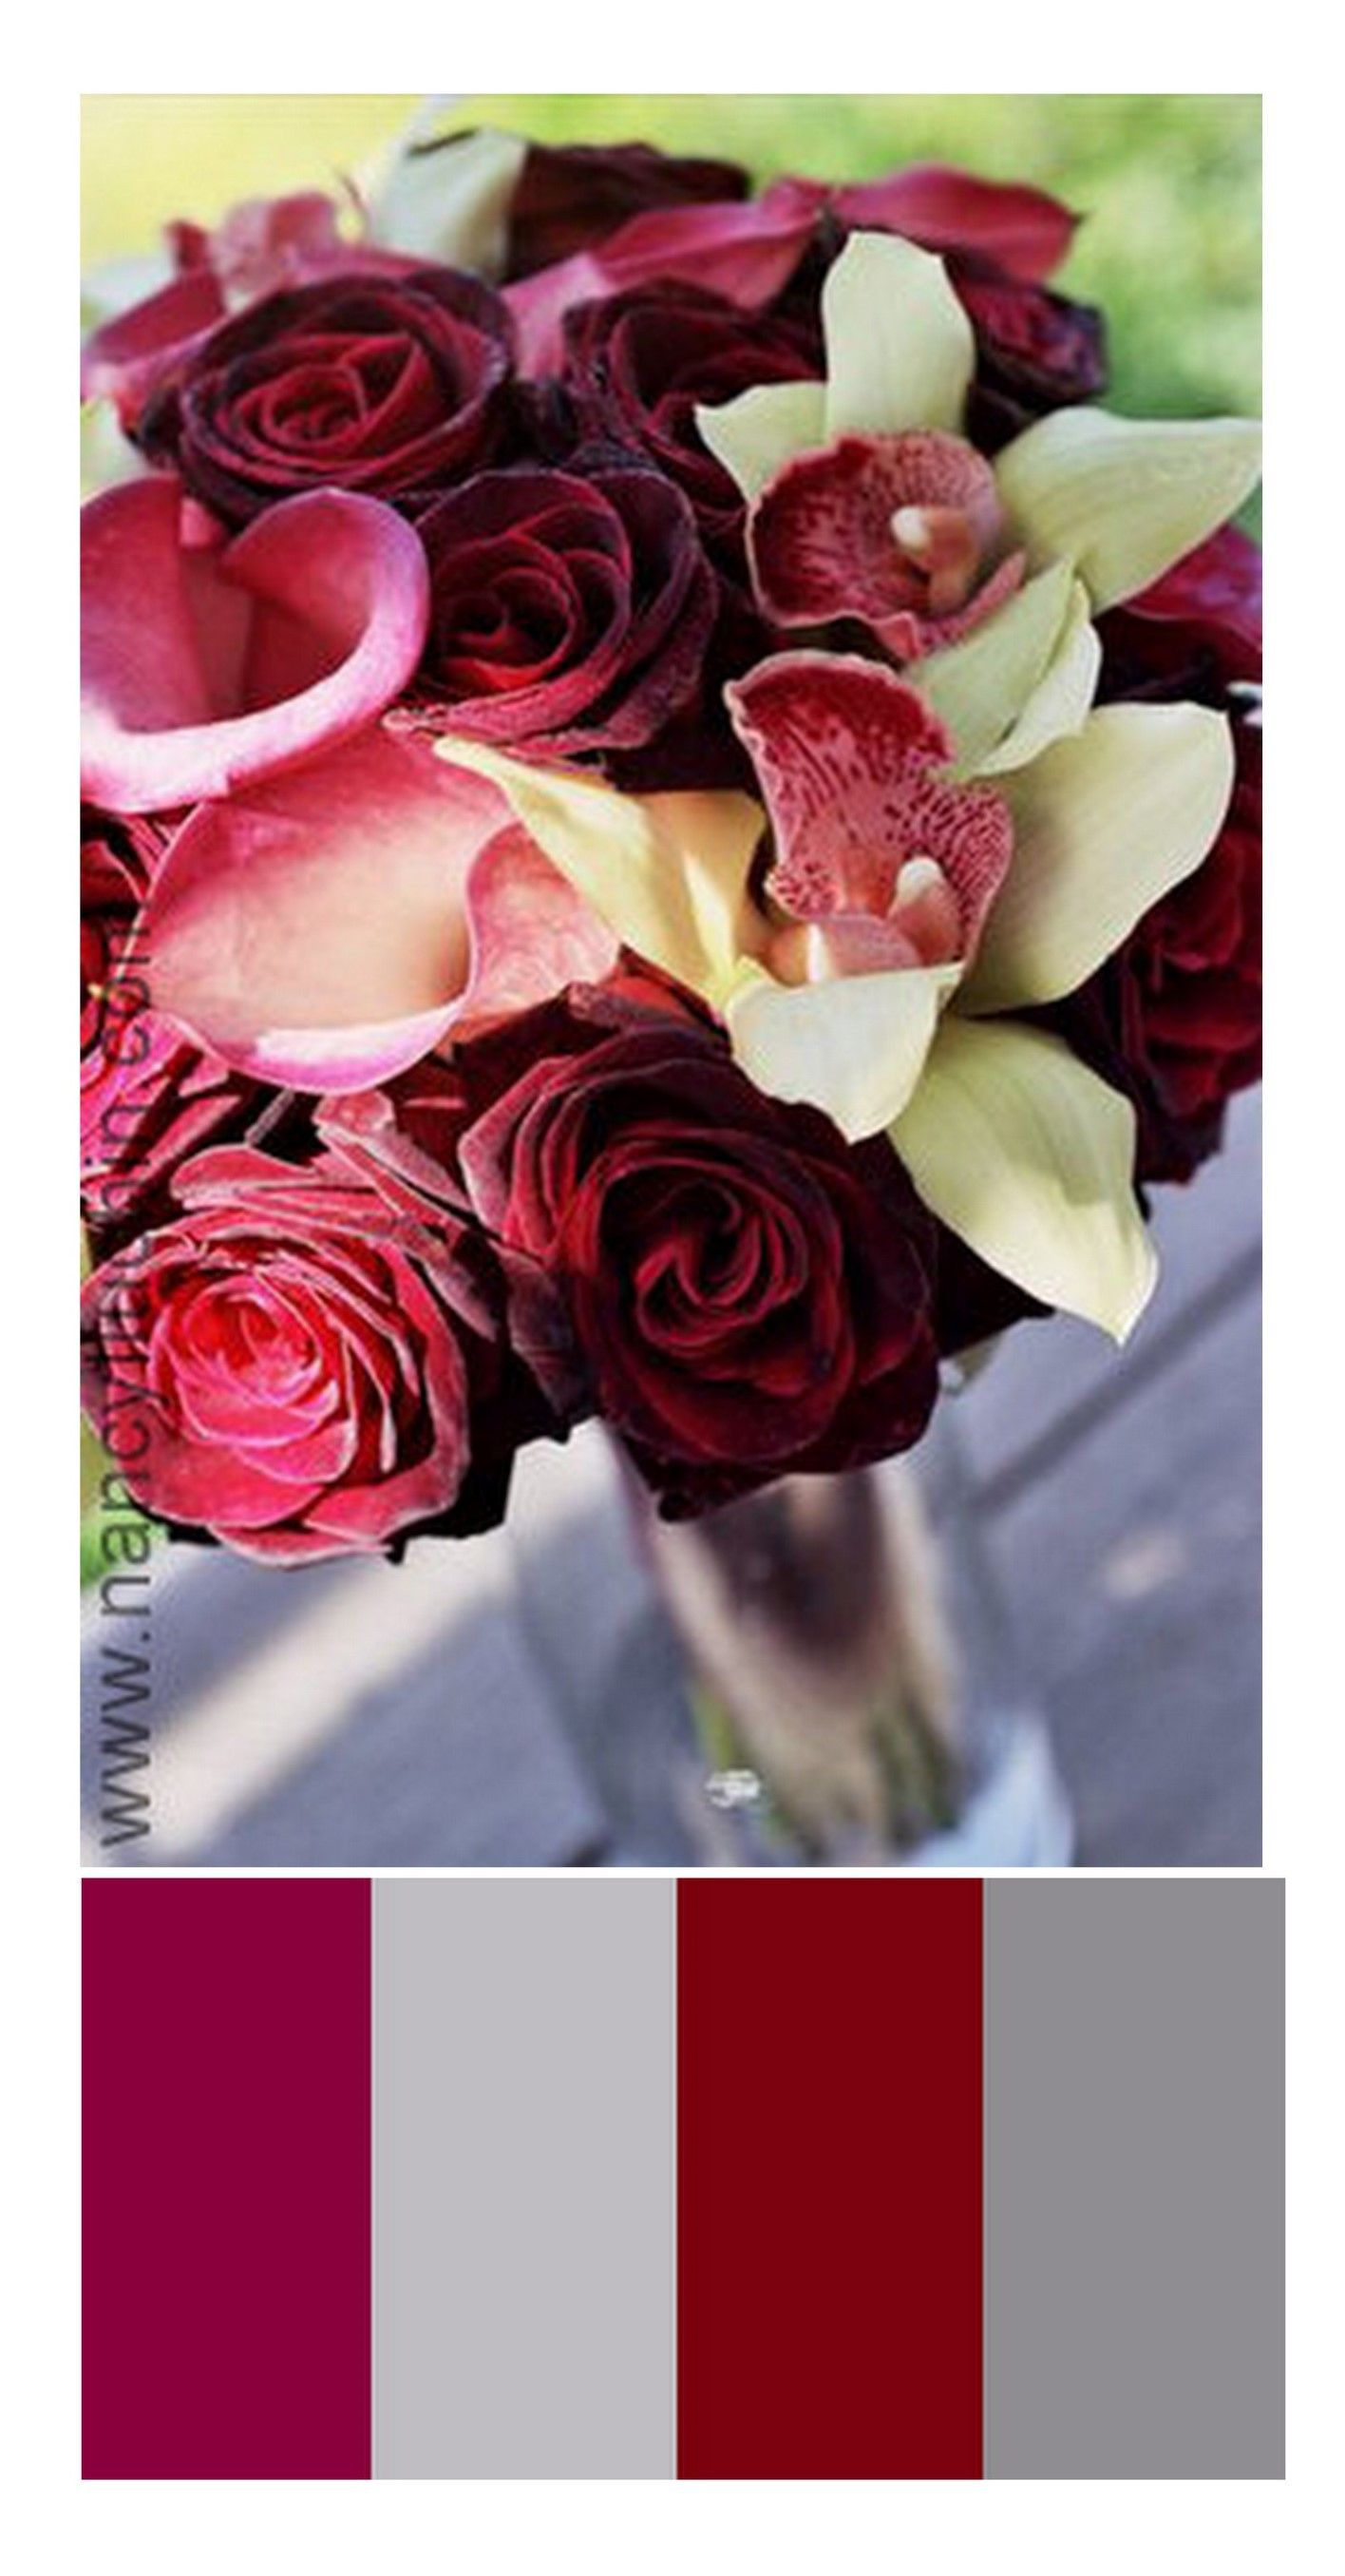 decorating burgandy color palette | Wedding color palettes, wedding ...